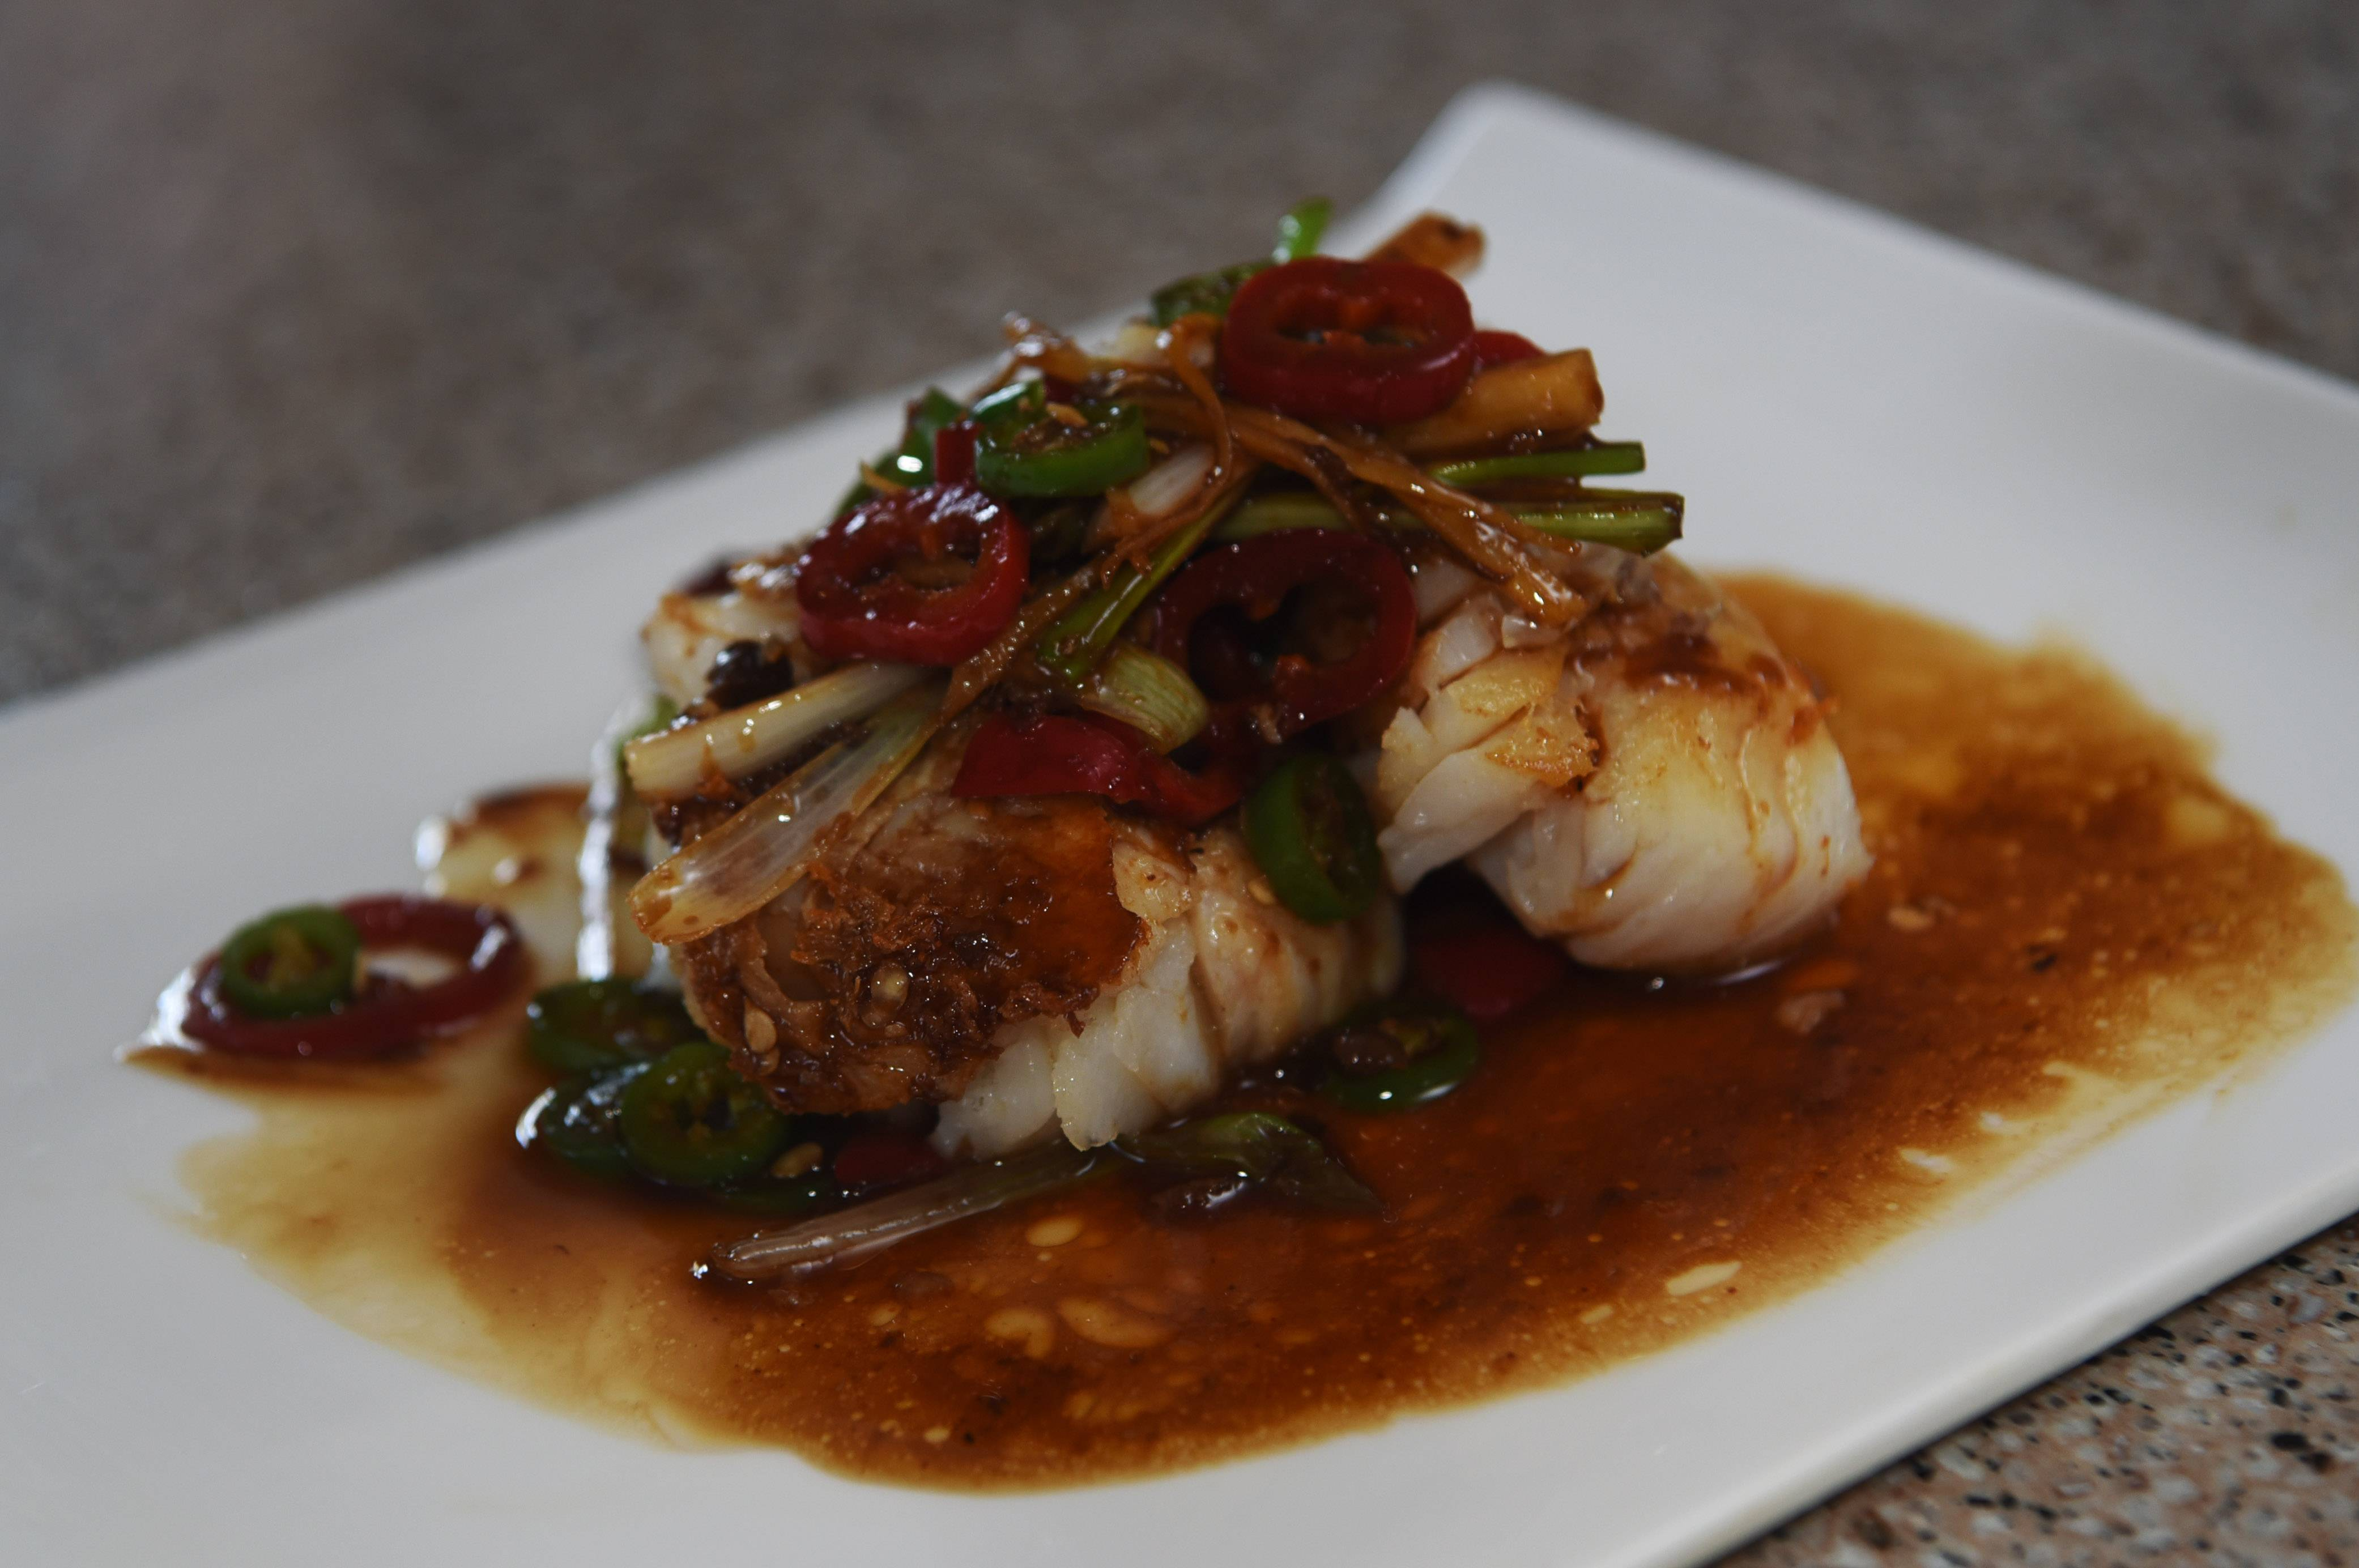 Pan-Seared Cod prepared for Chinese New Year by Ying Stoller of Gurnee.